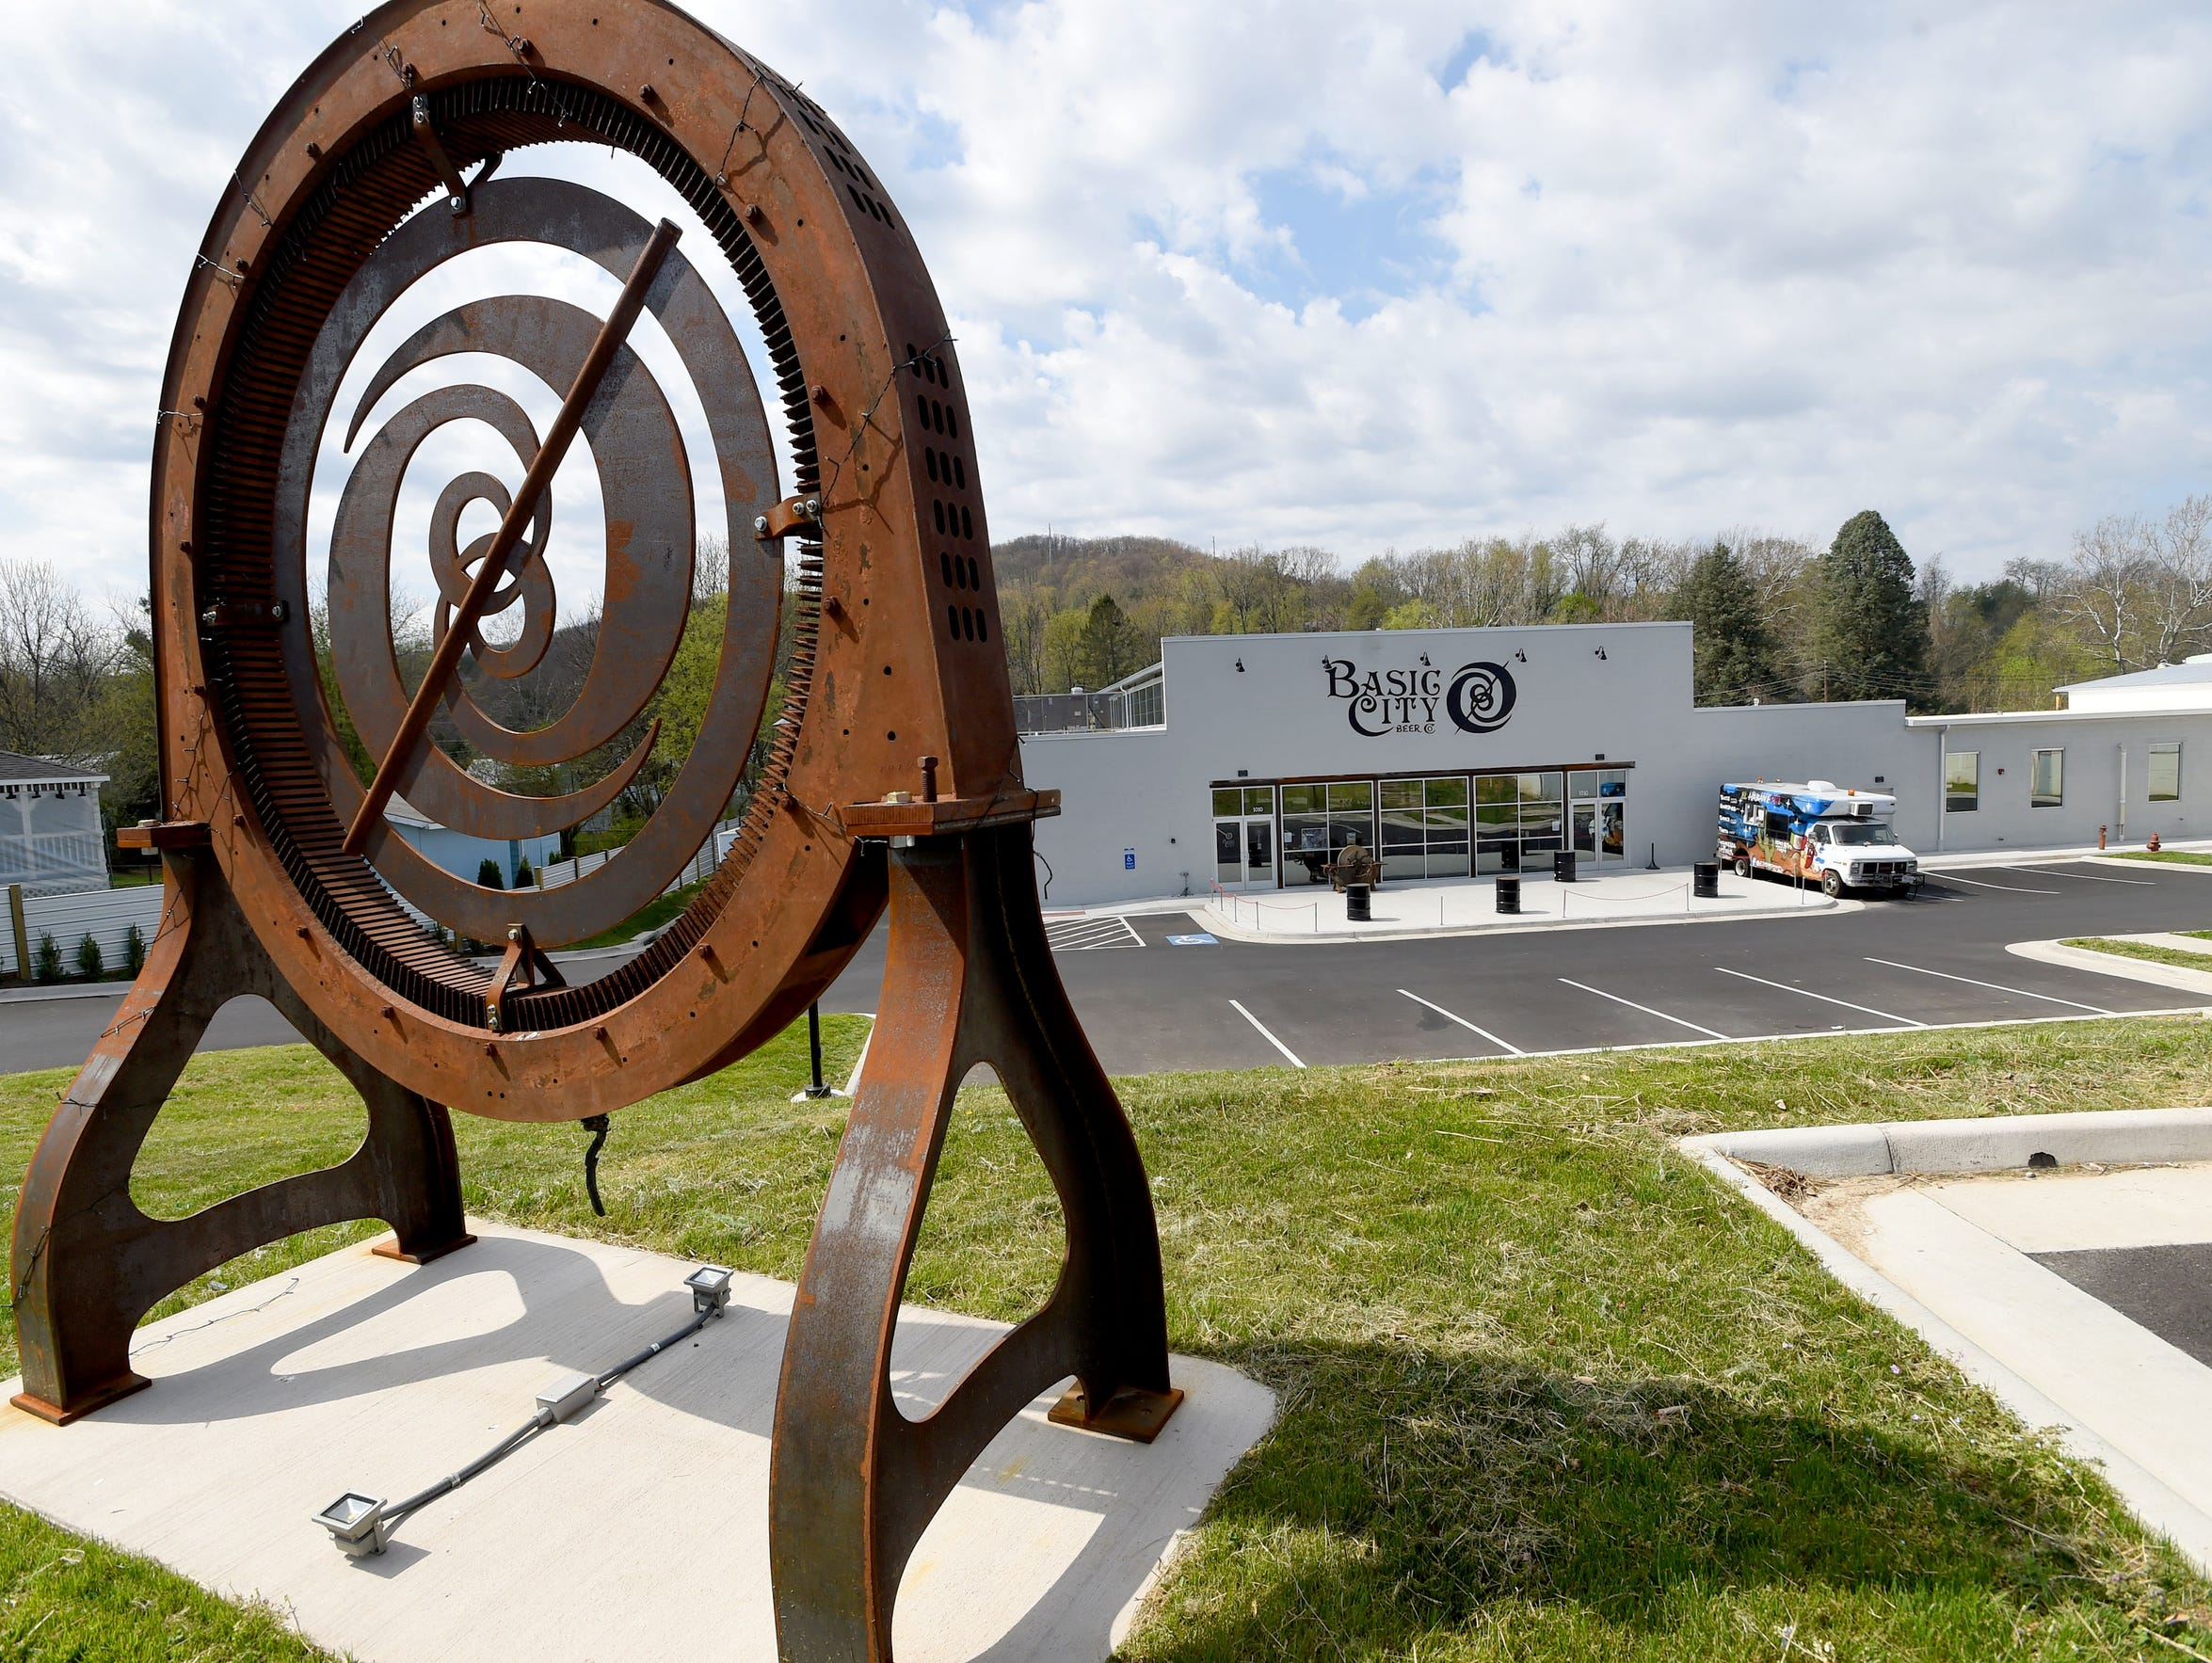 Basic City Beer Co., located in the old Virginia Metalcrafters